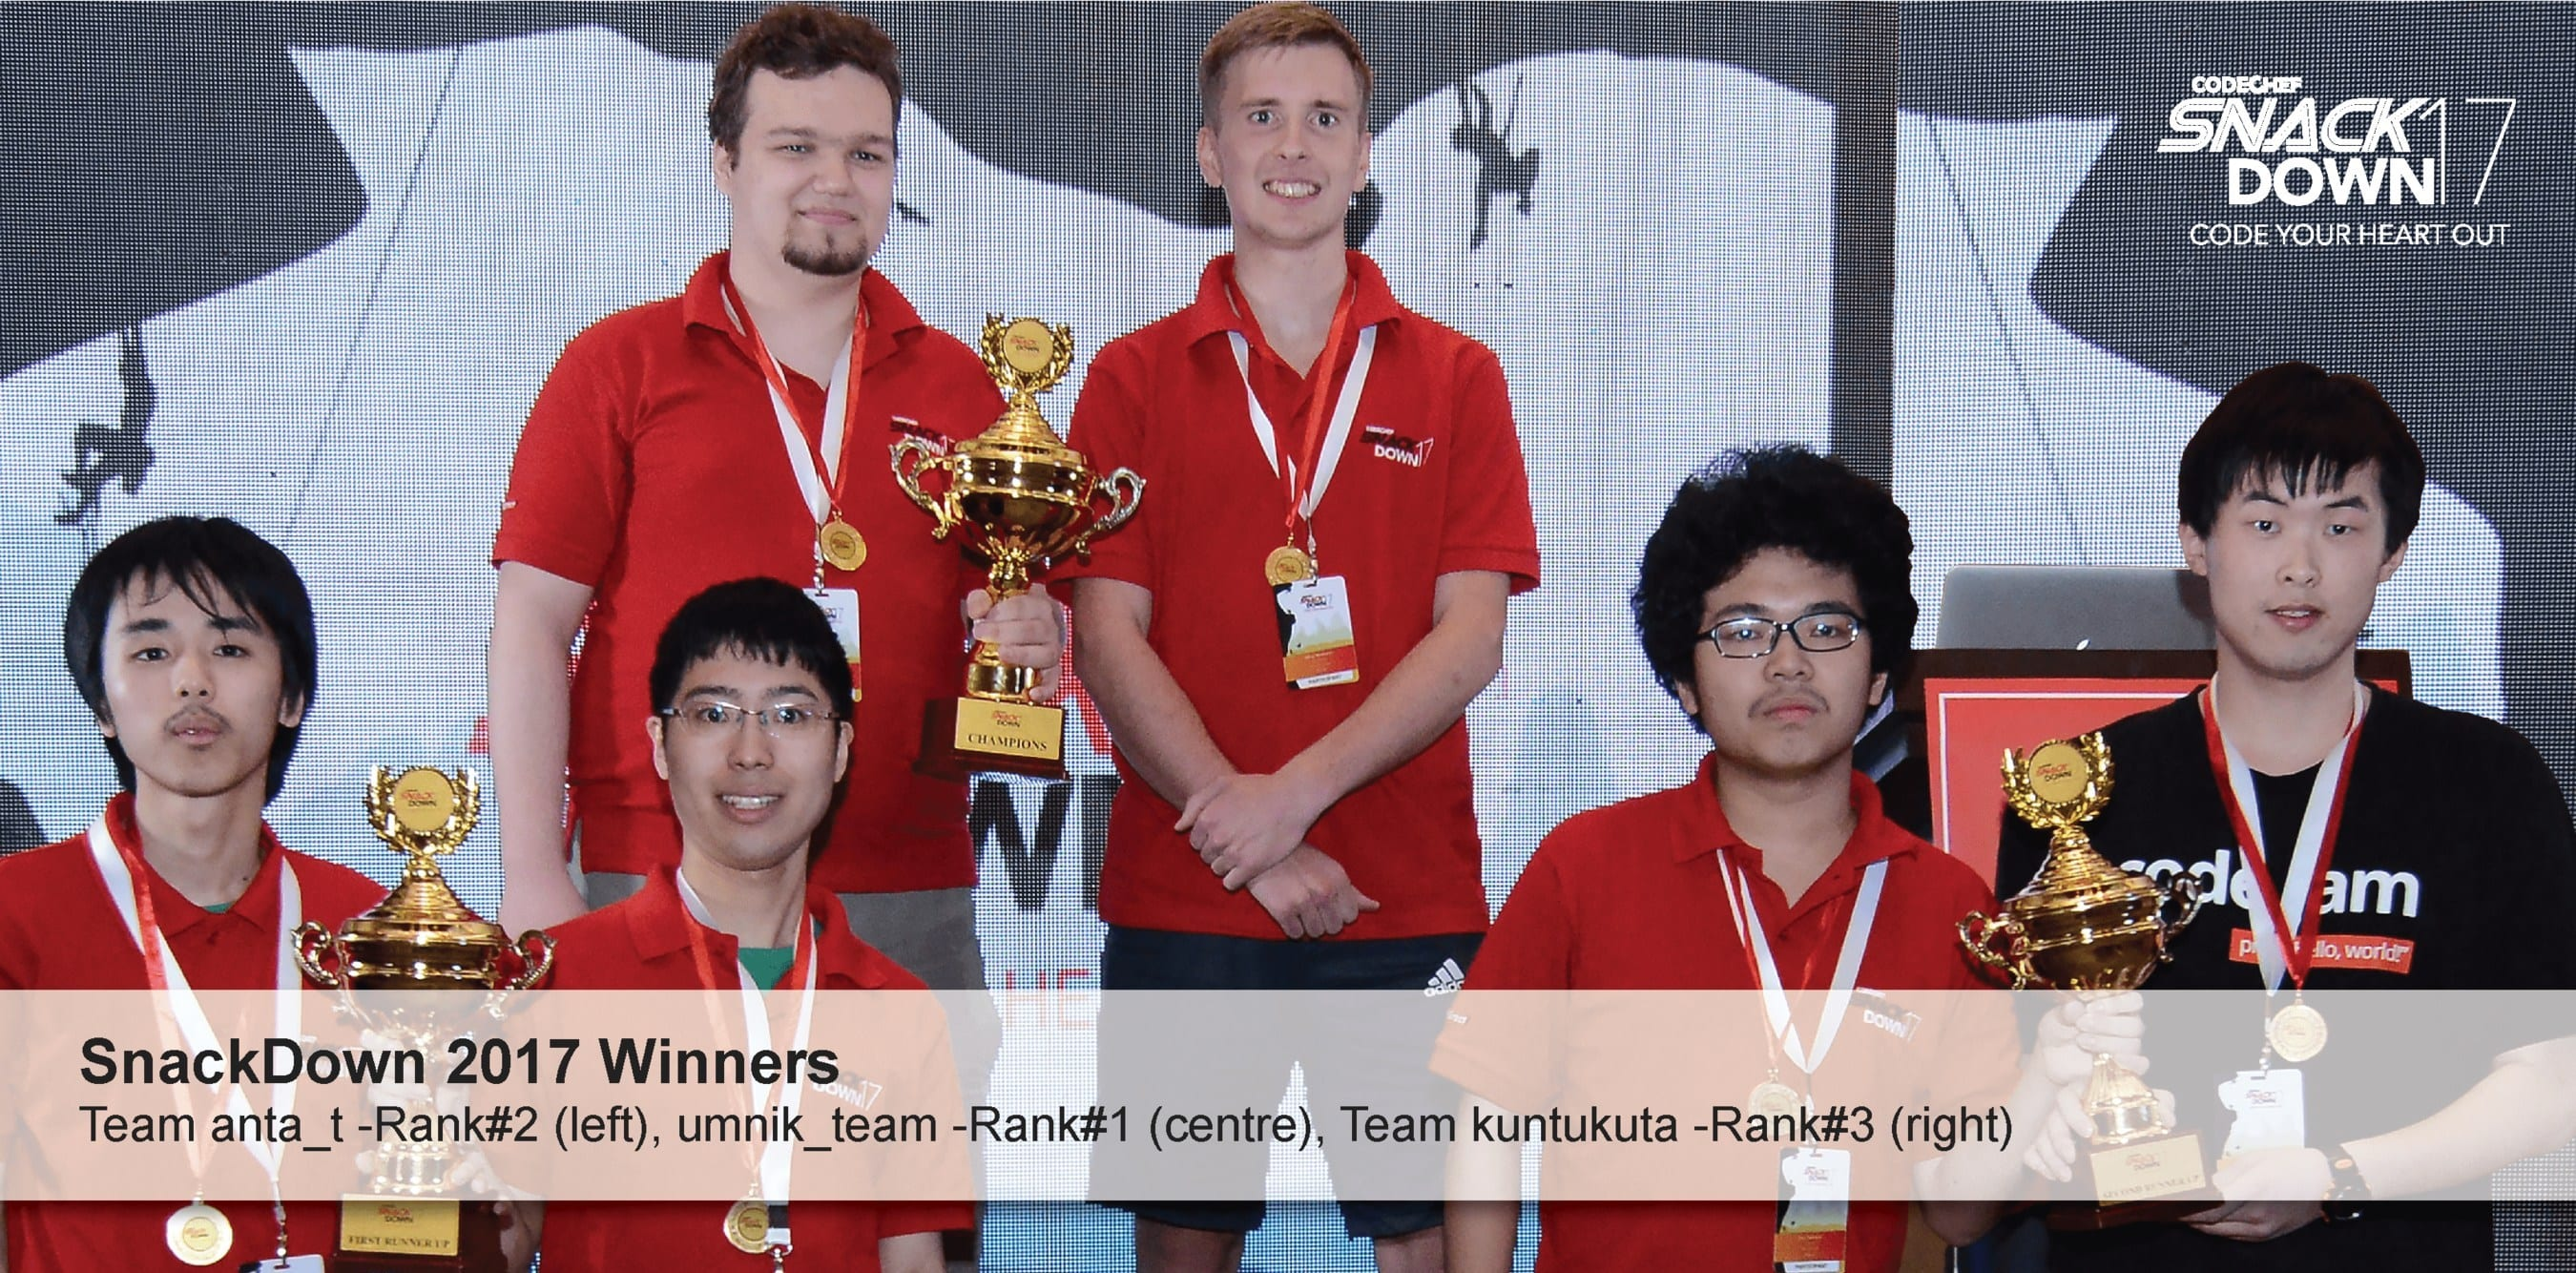 Students from Russia, Japan, China and IIT Kanpur win CodeChef SnackDown 2017 global programming contest